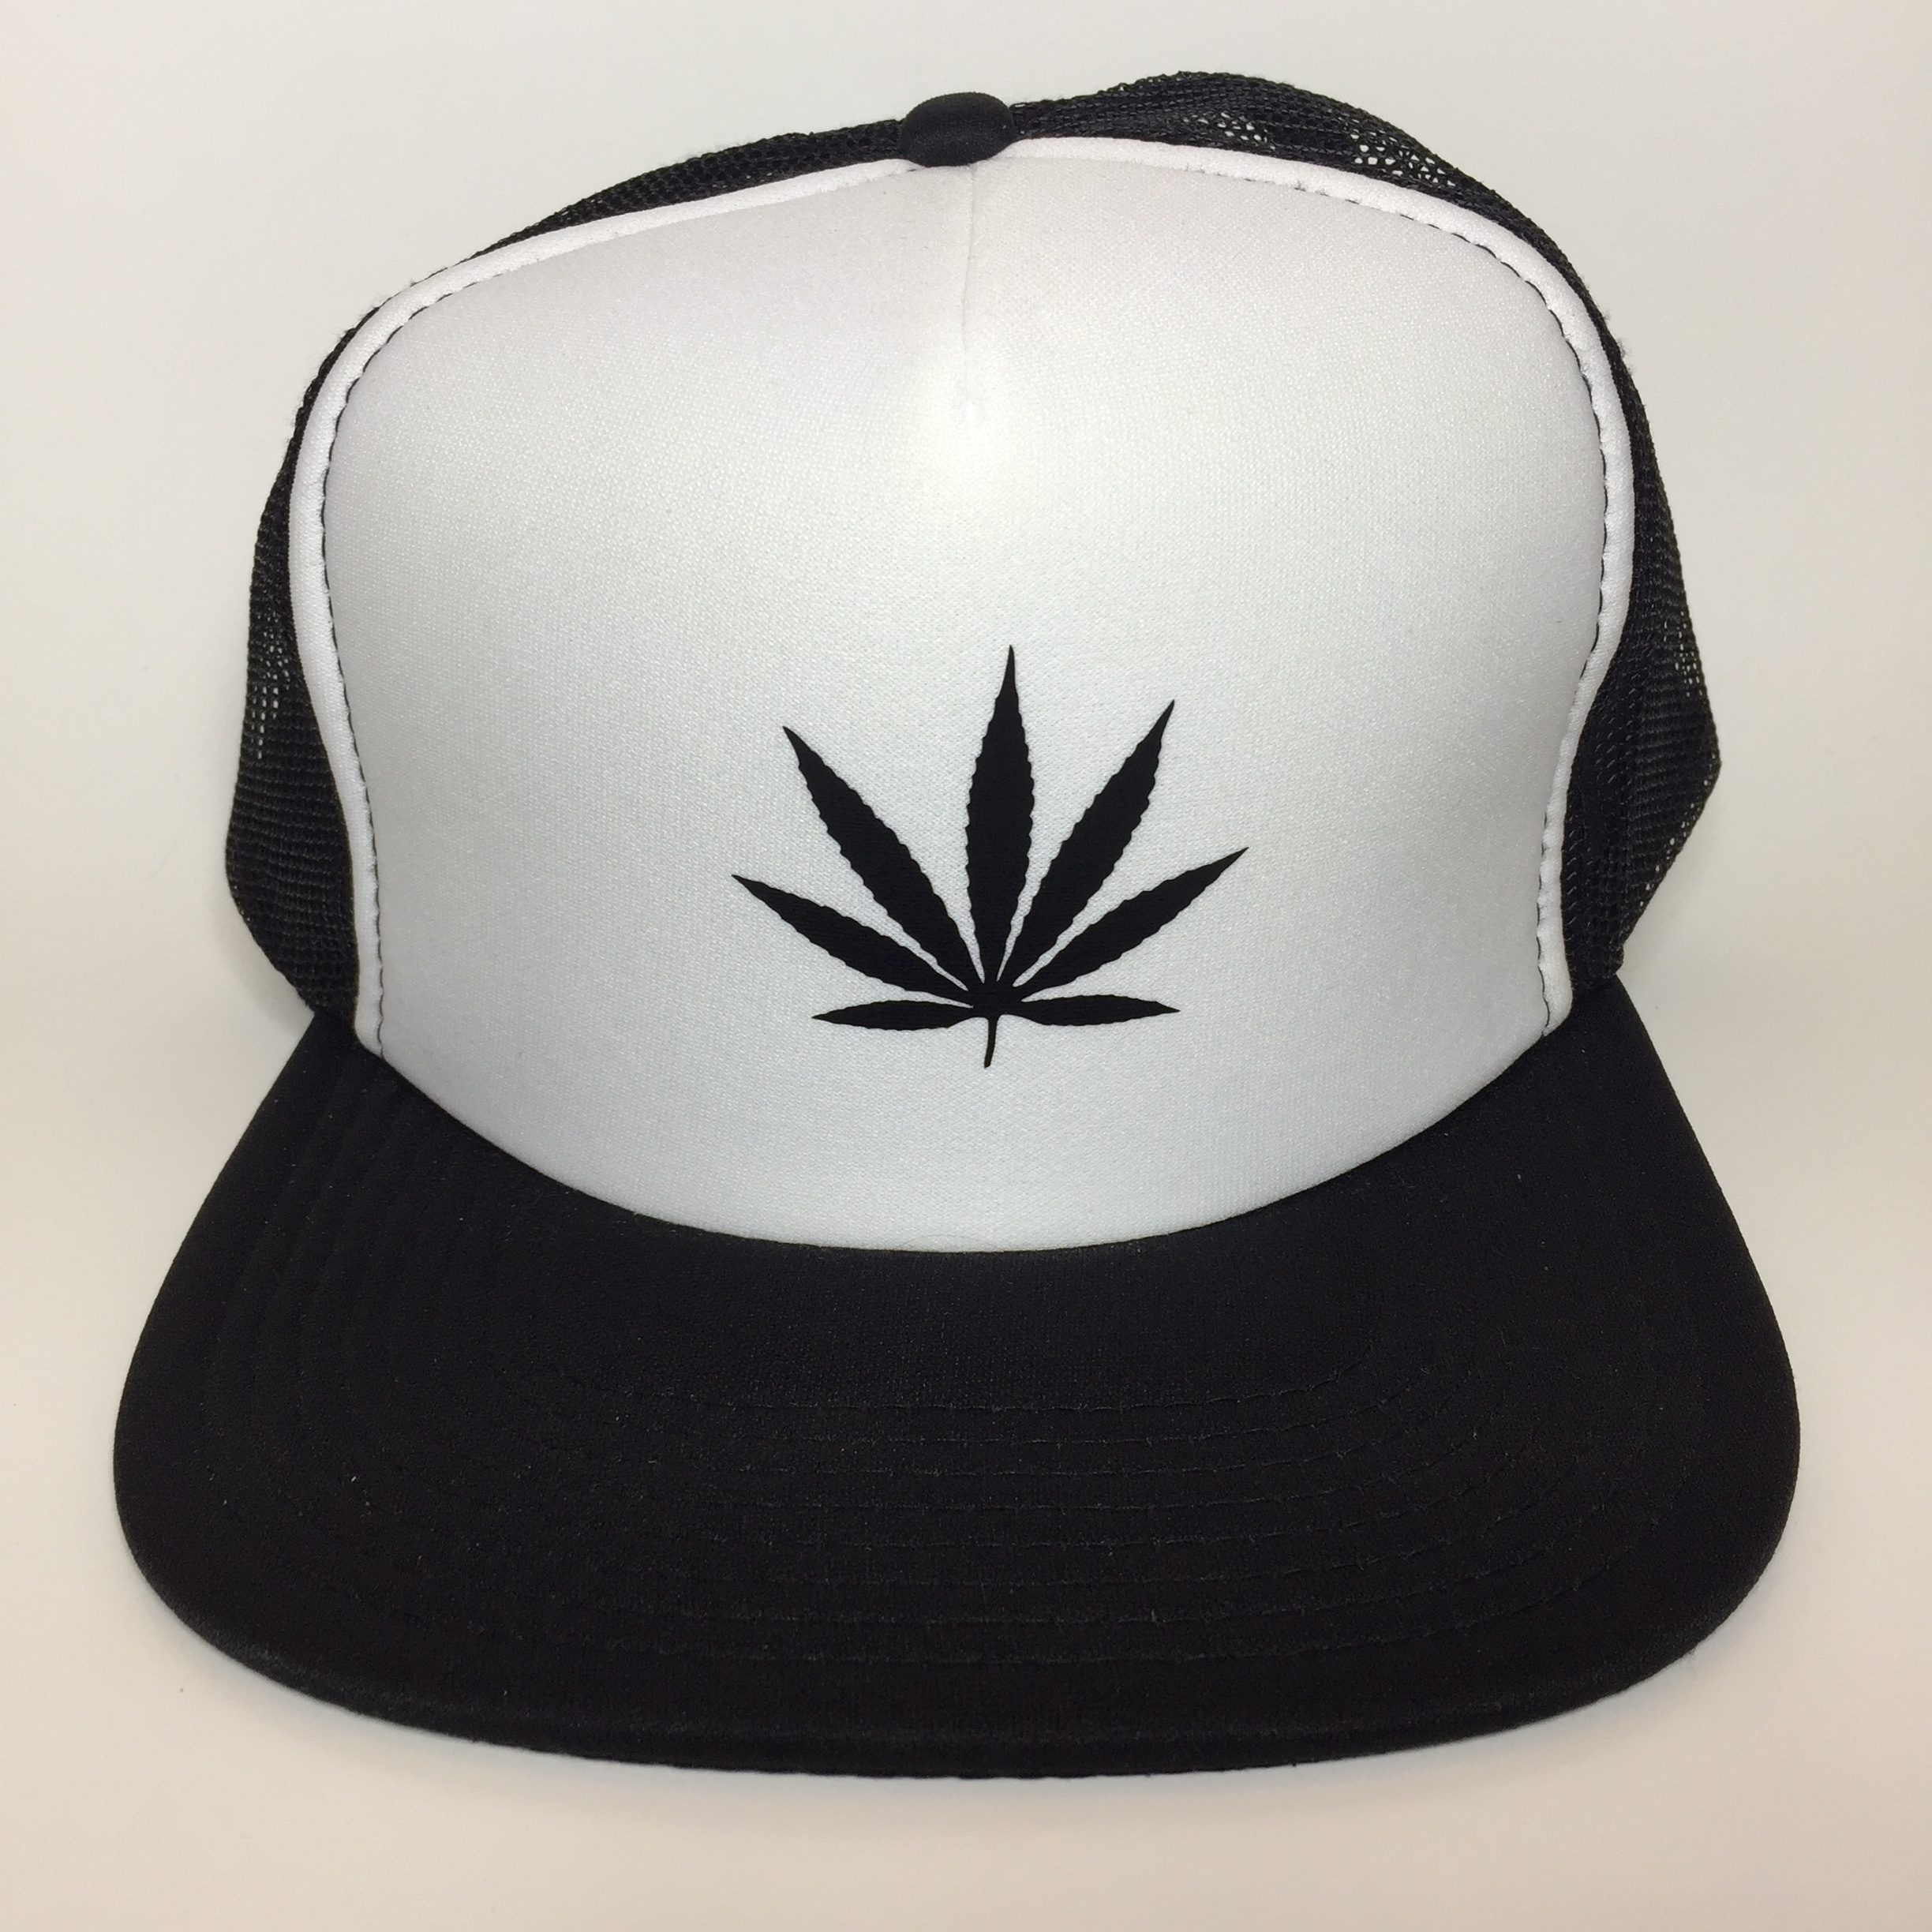 Weed Leaf Trucker Hat Black on White Front View